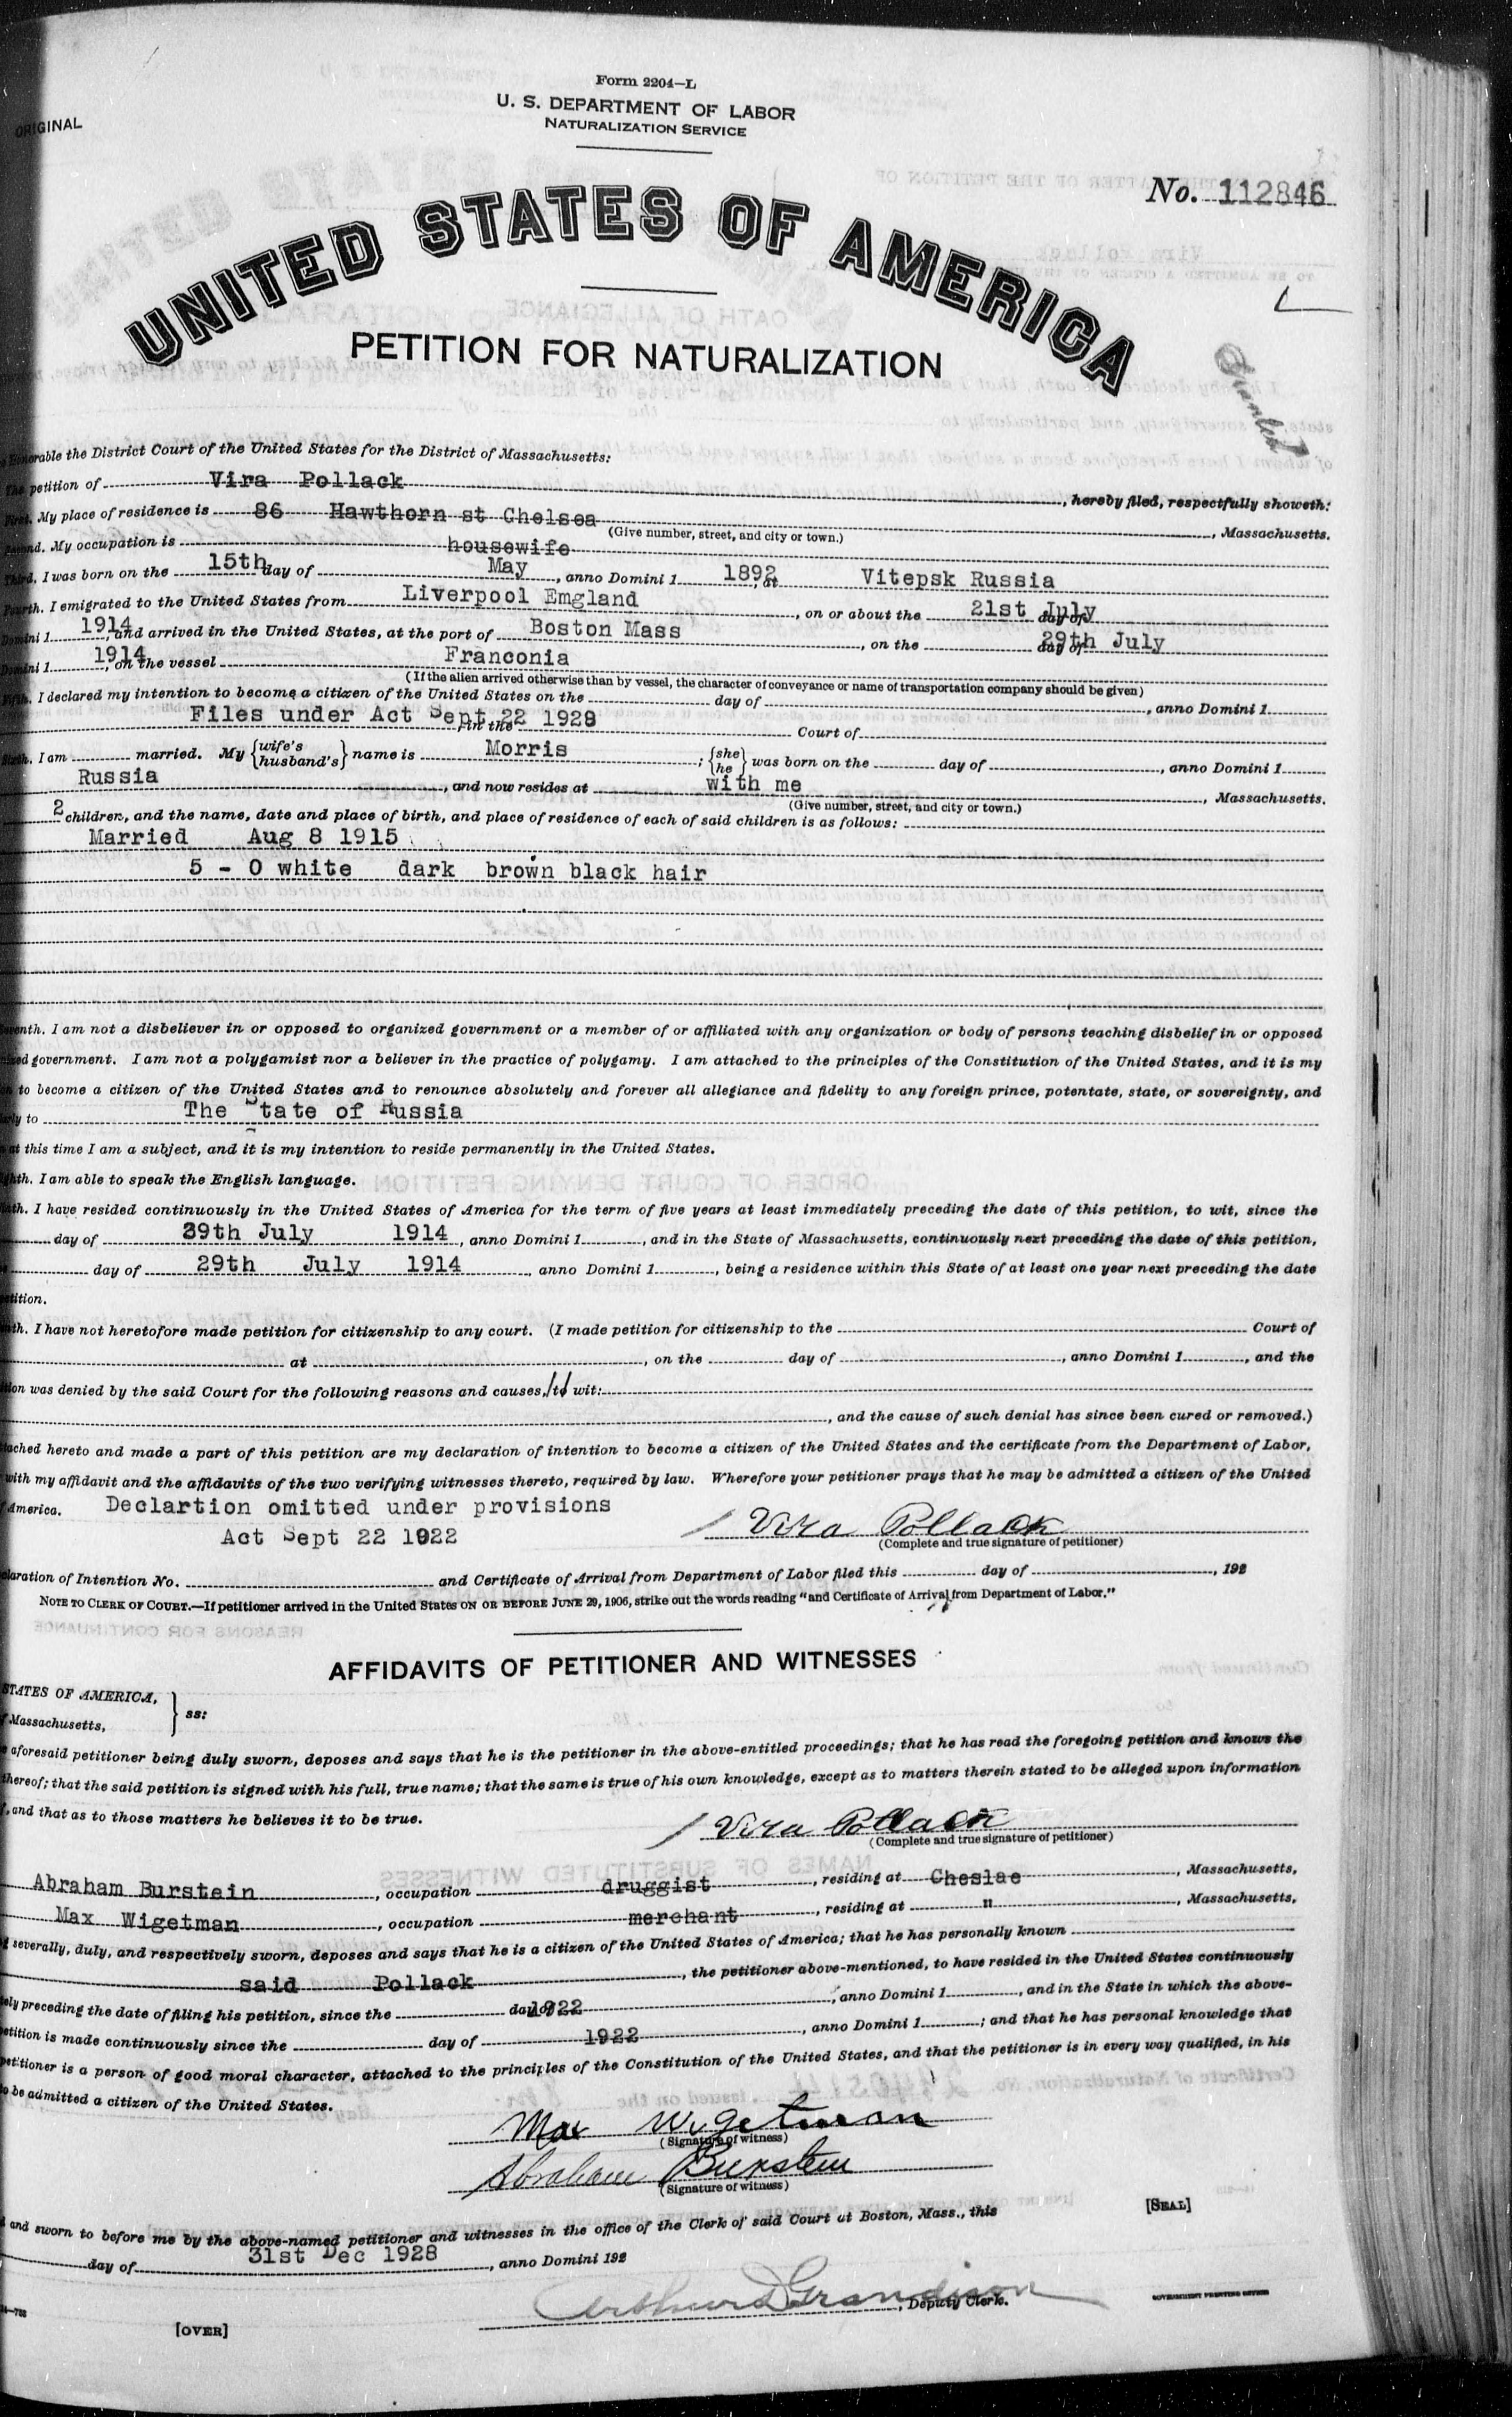 Petition for Naturalization of Vira Pollack